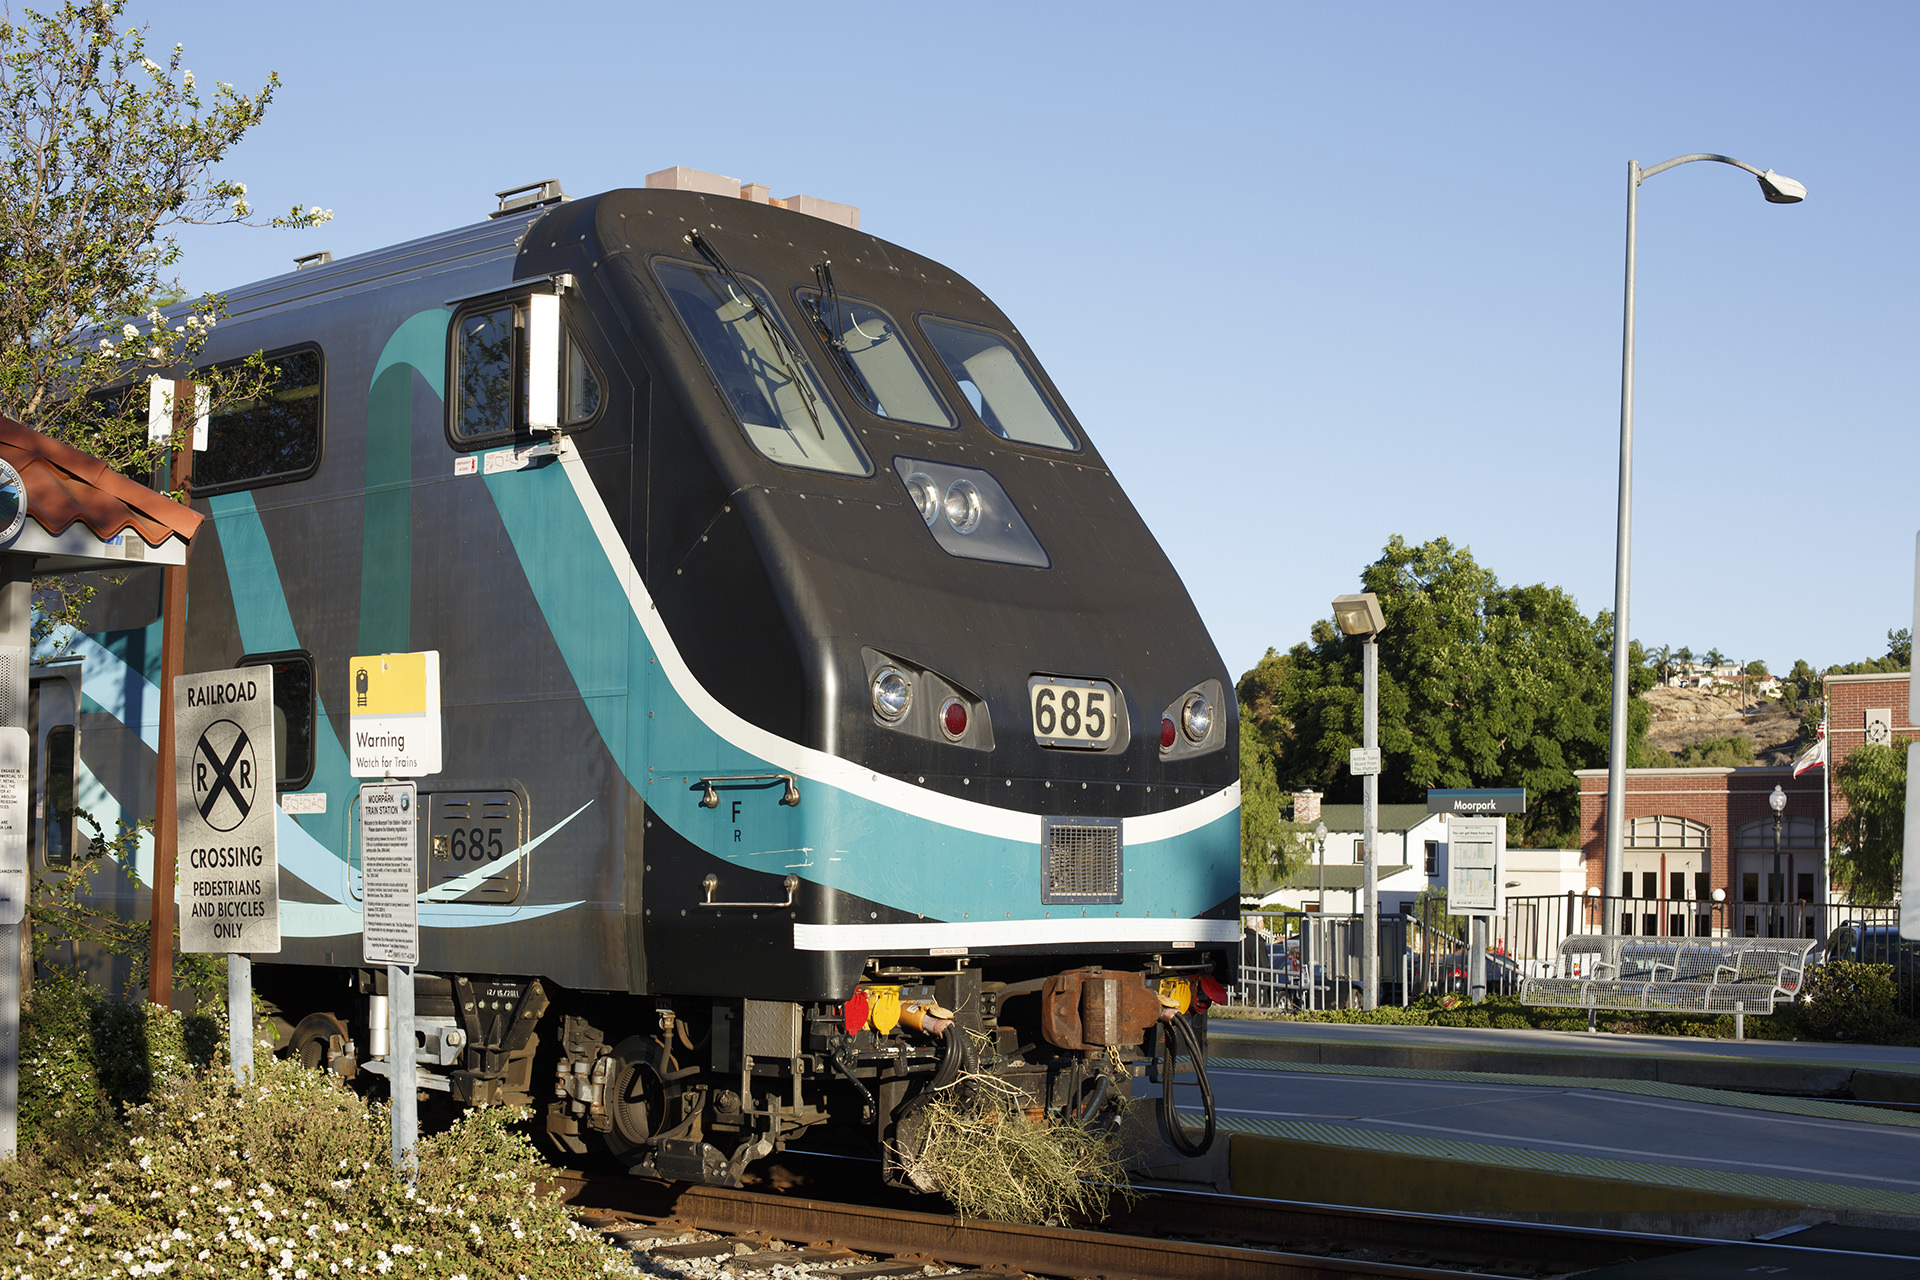 train – ventura county transportation commission